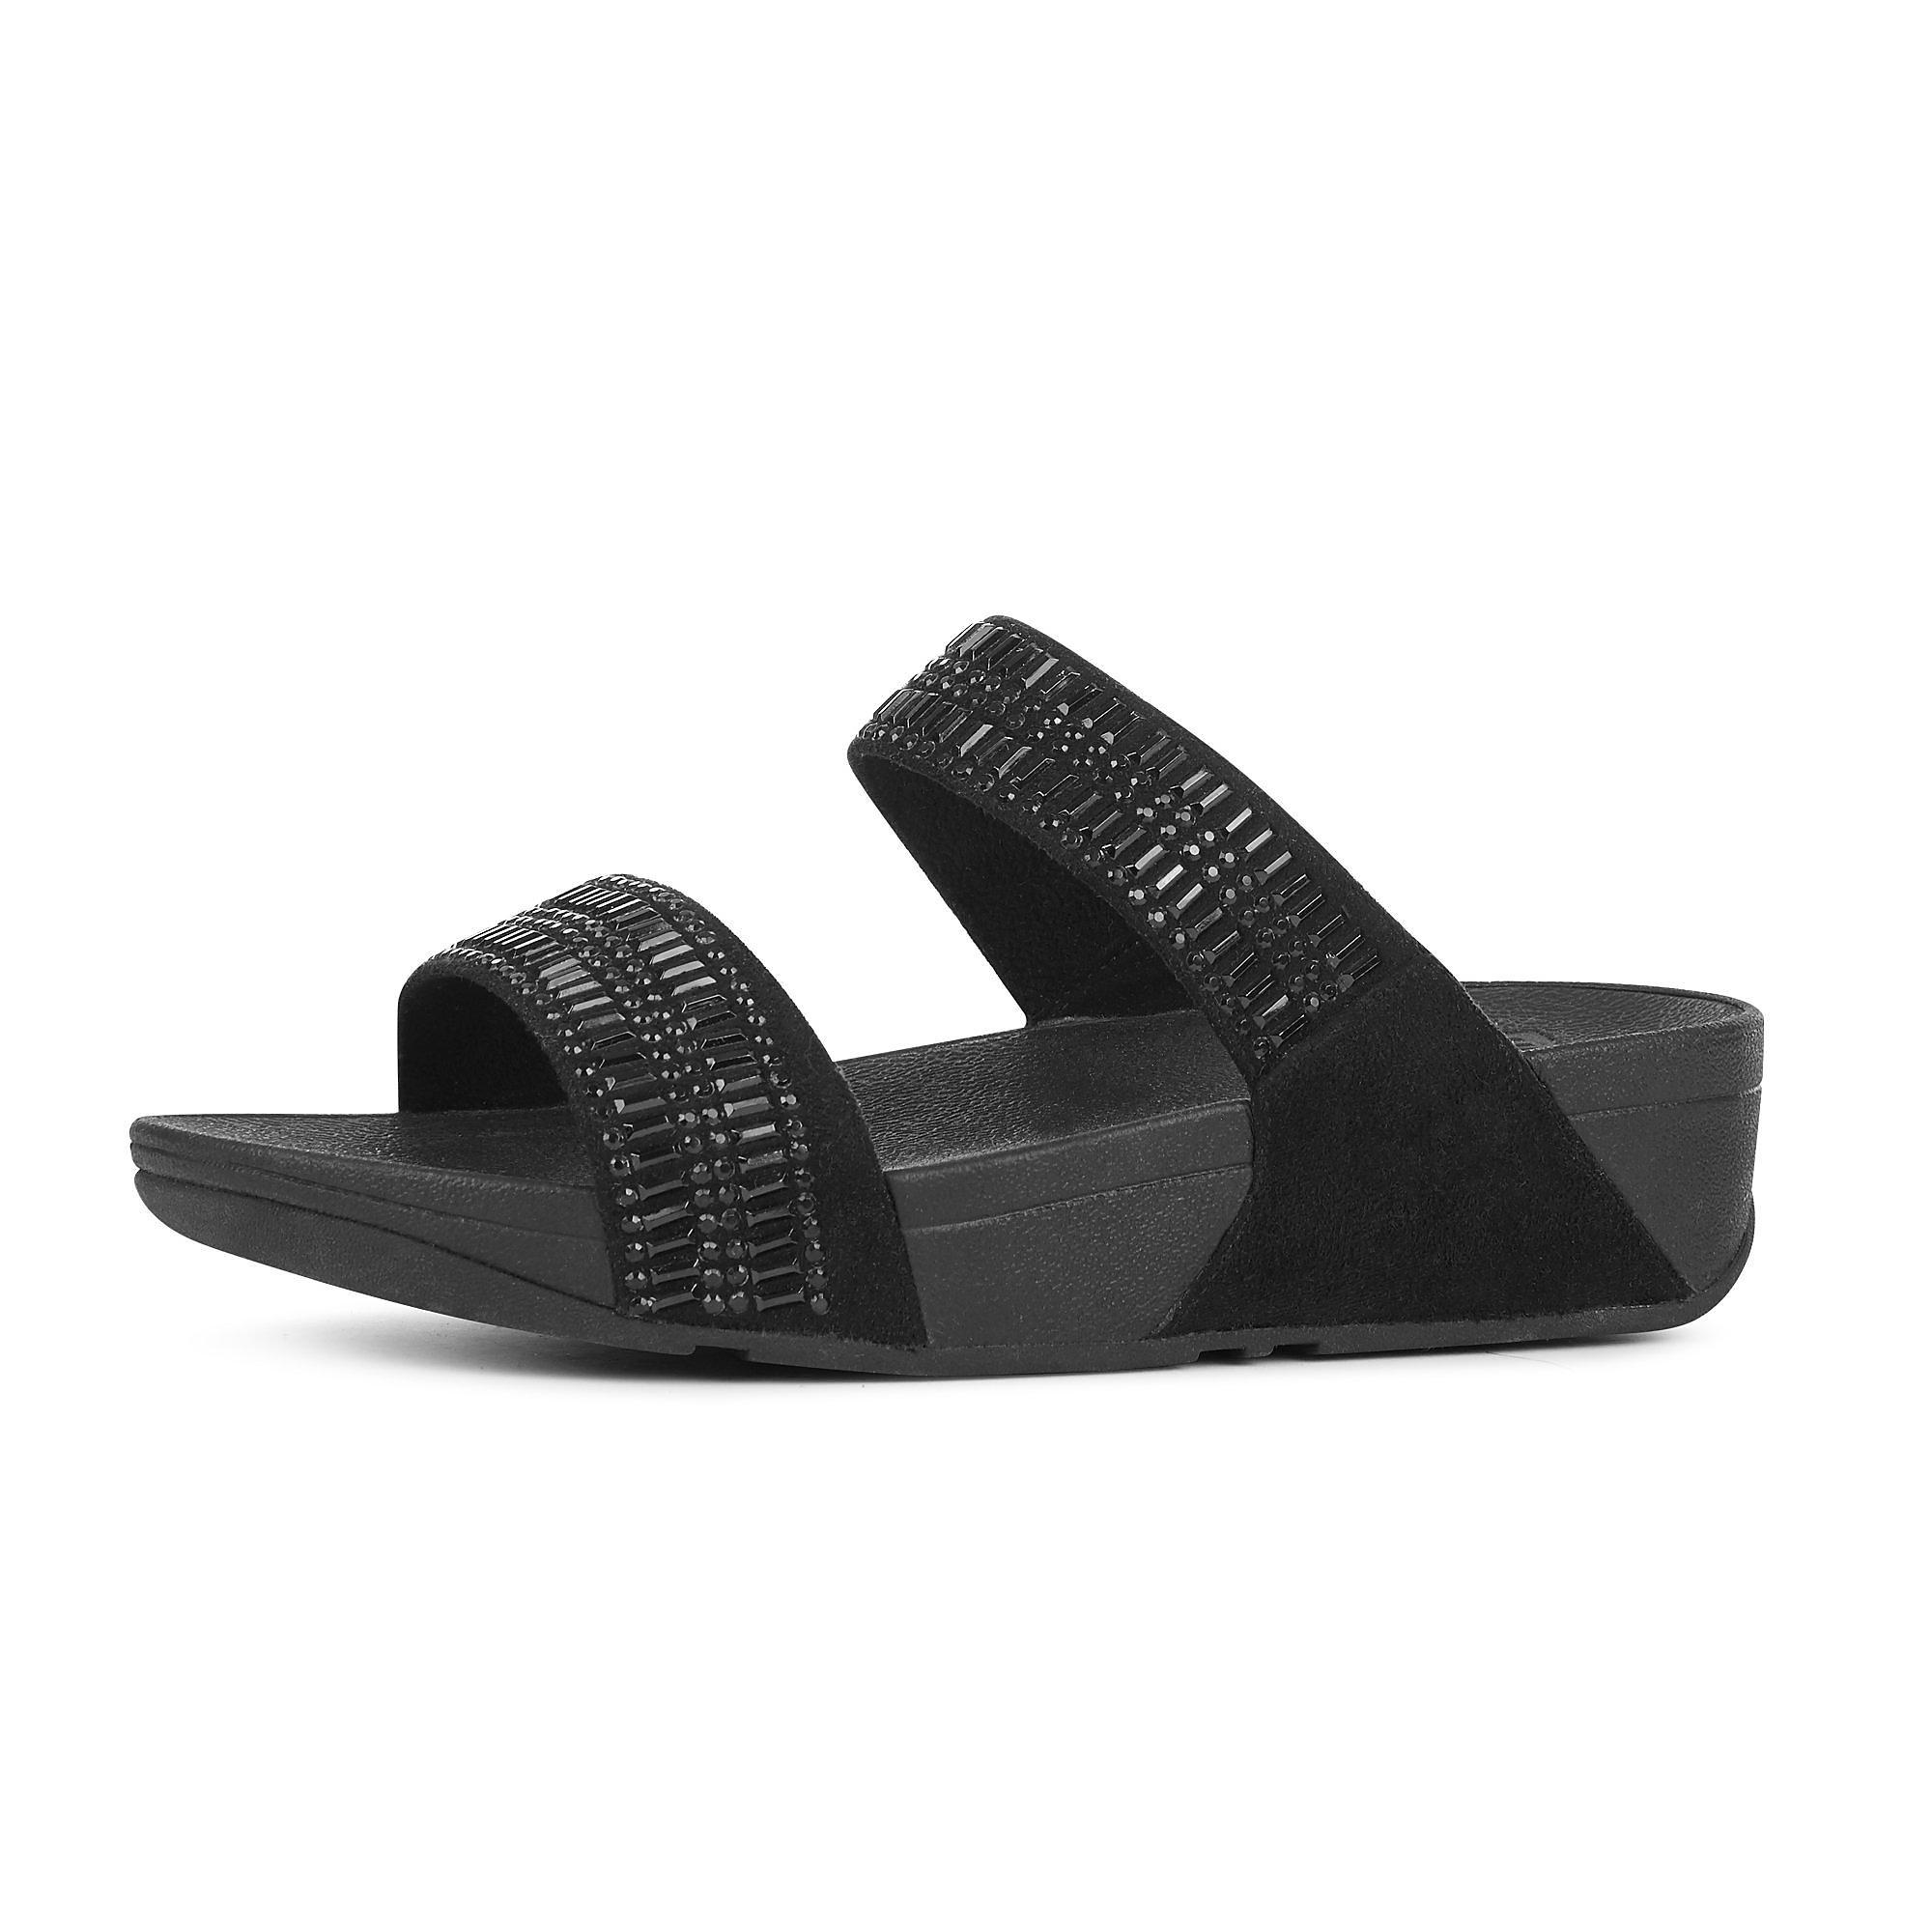 a0b382f17 Fitflop Incastone Slide Sandals in Black - Save 8% - Lyst